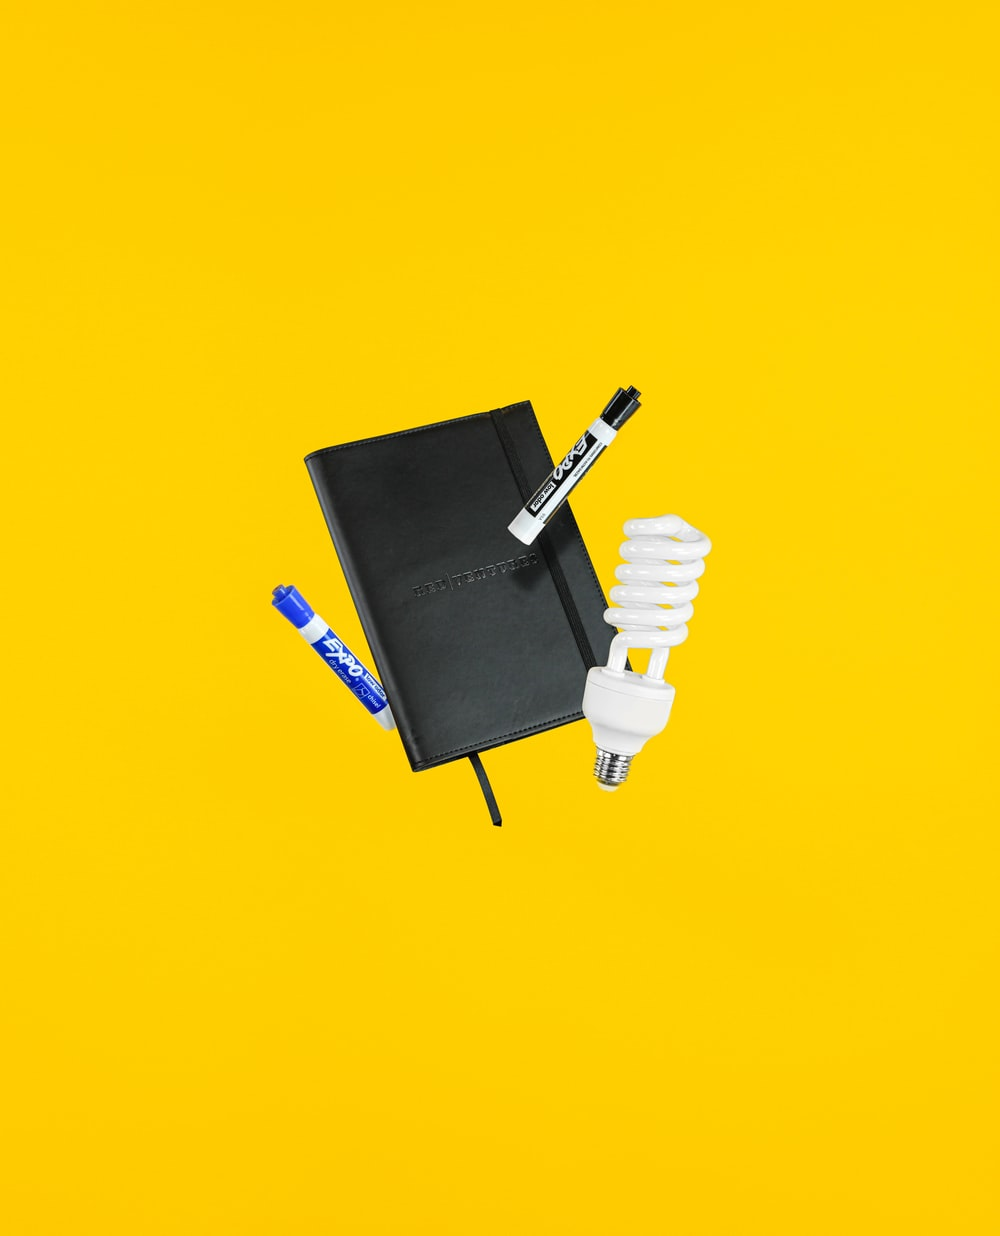 black and blue Expo markers near white CFL bulb and black hardbound book